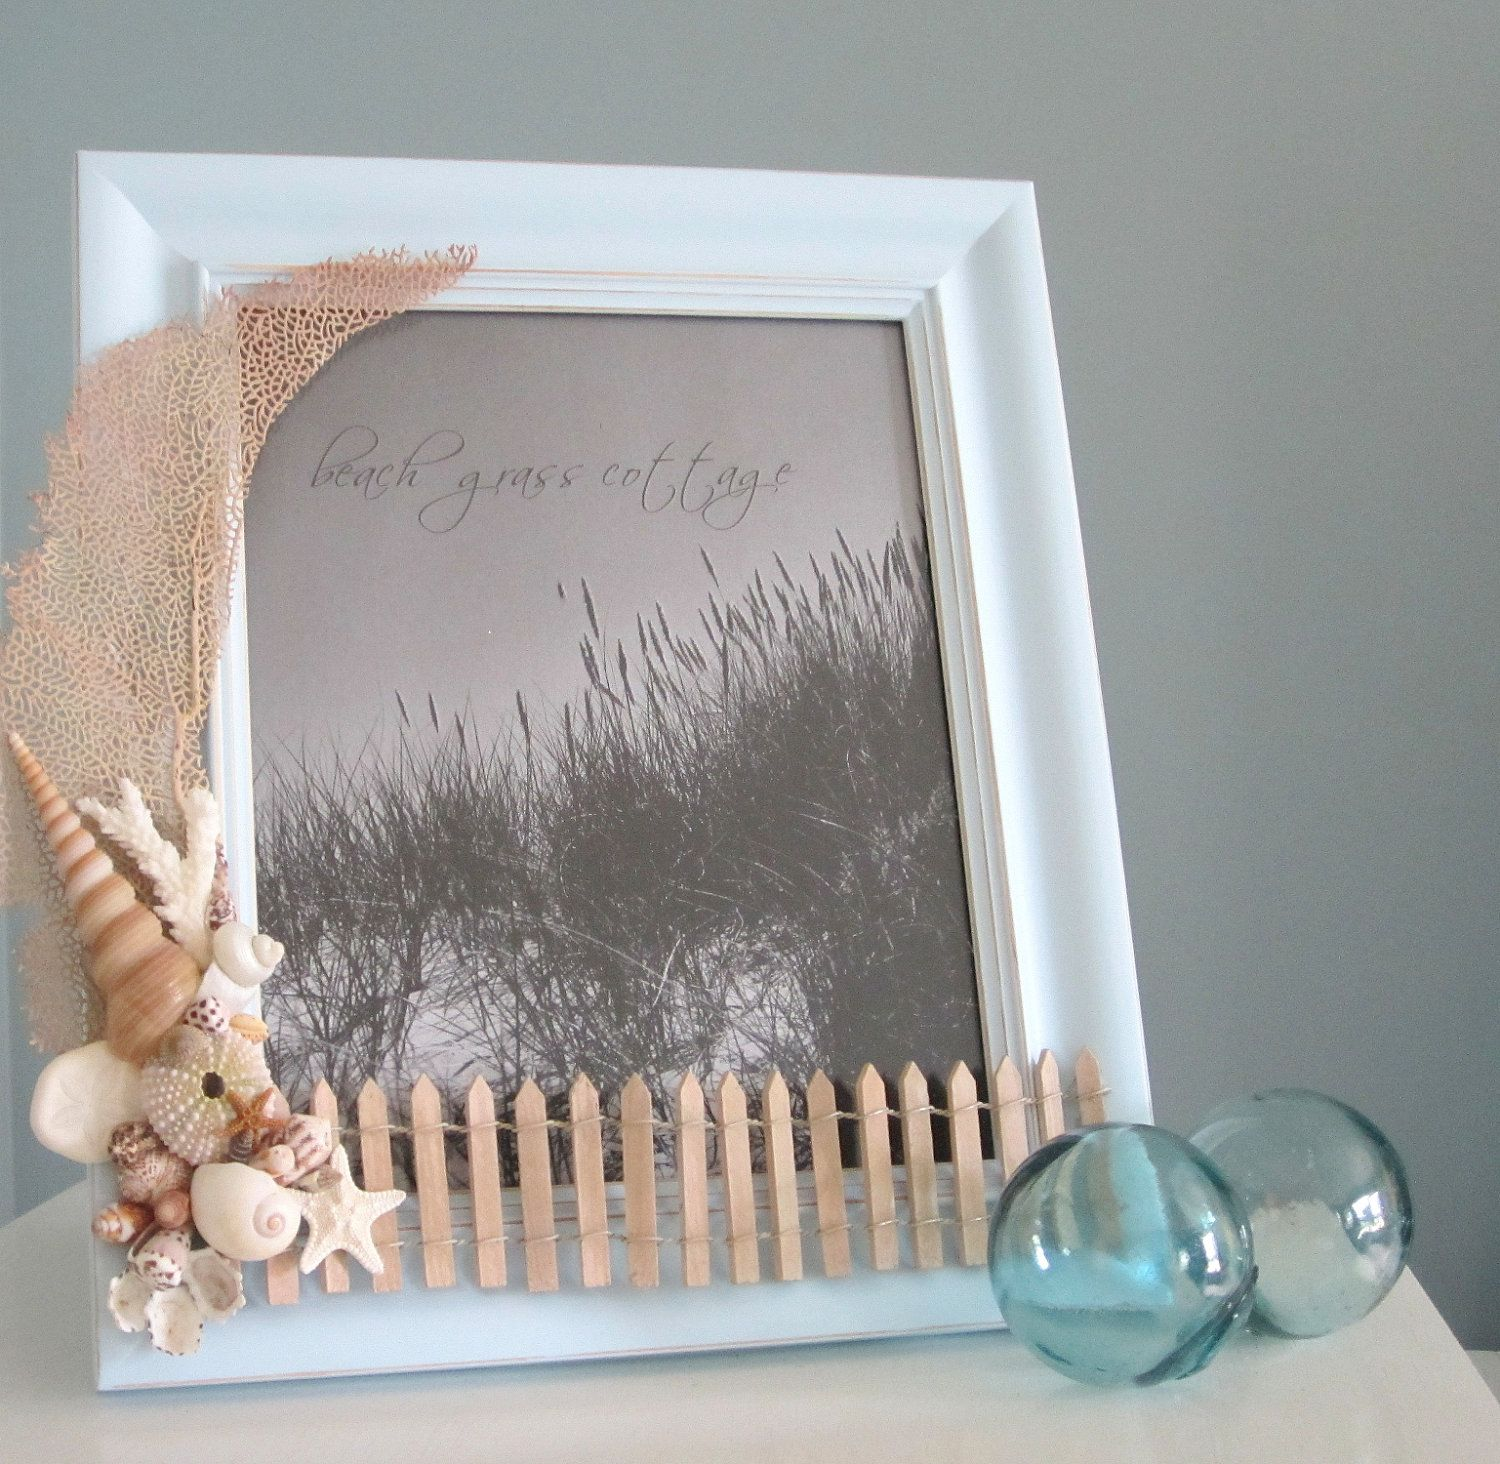 Beach Decor Shell Frame Nautical Seashell Frame With Lace Coral Shells And Beach Fence Blue 8x10 6 Beach Themed Crafts Seashell Projects Seashell Frame